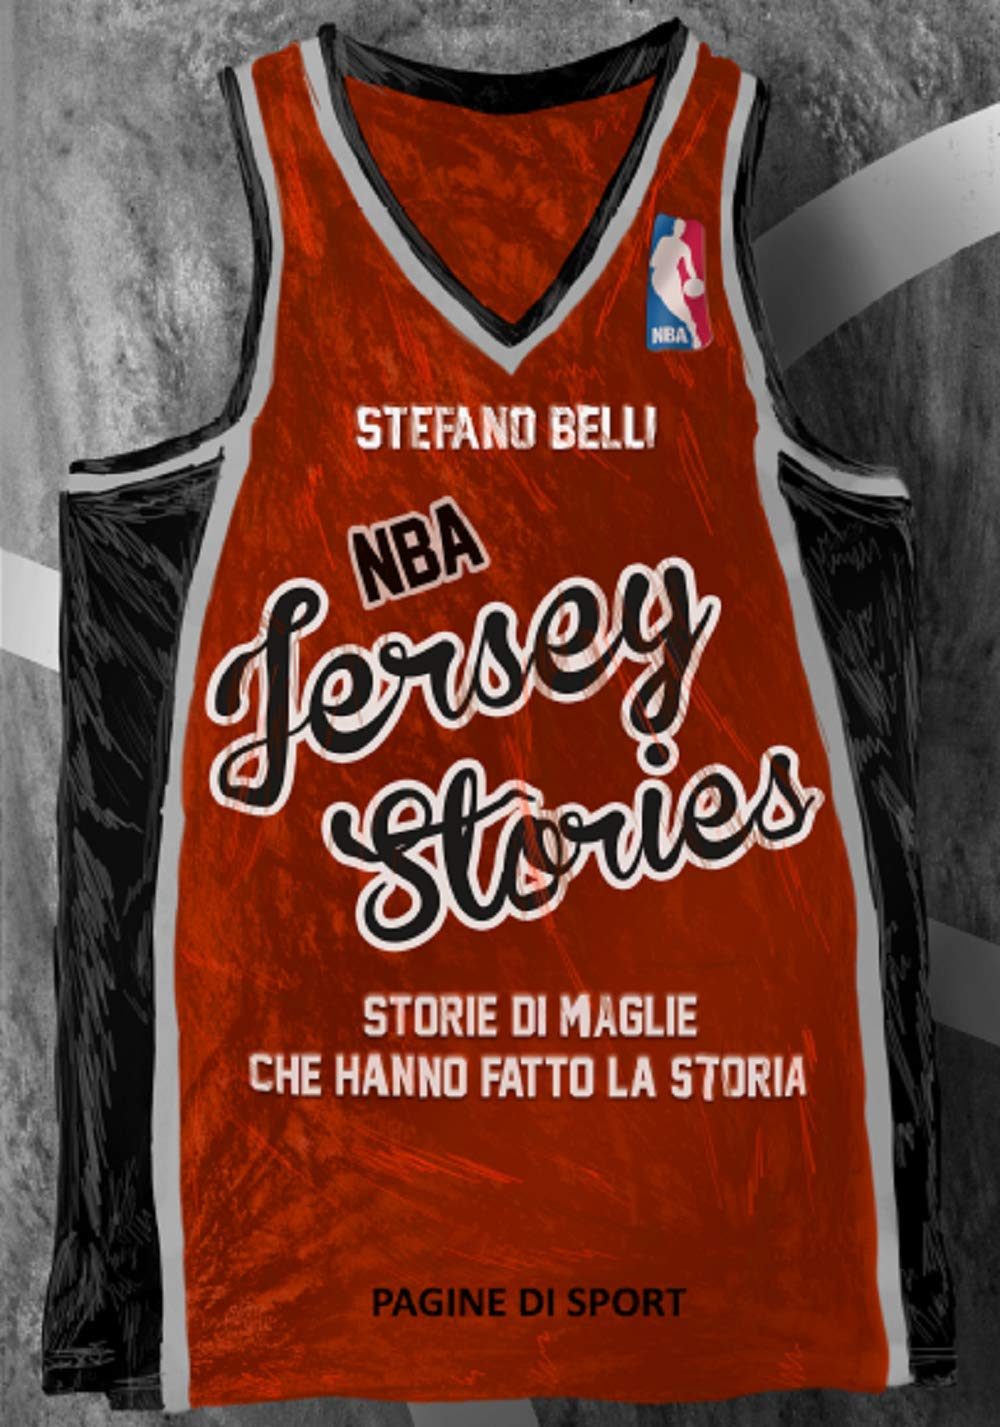 Download NBA Jersey Stories. Storie Di Maglie Che Hanno Fatto La Storia 